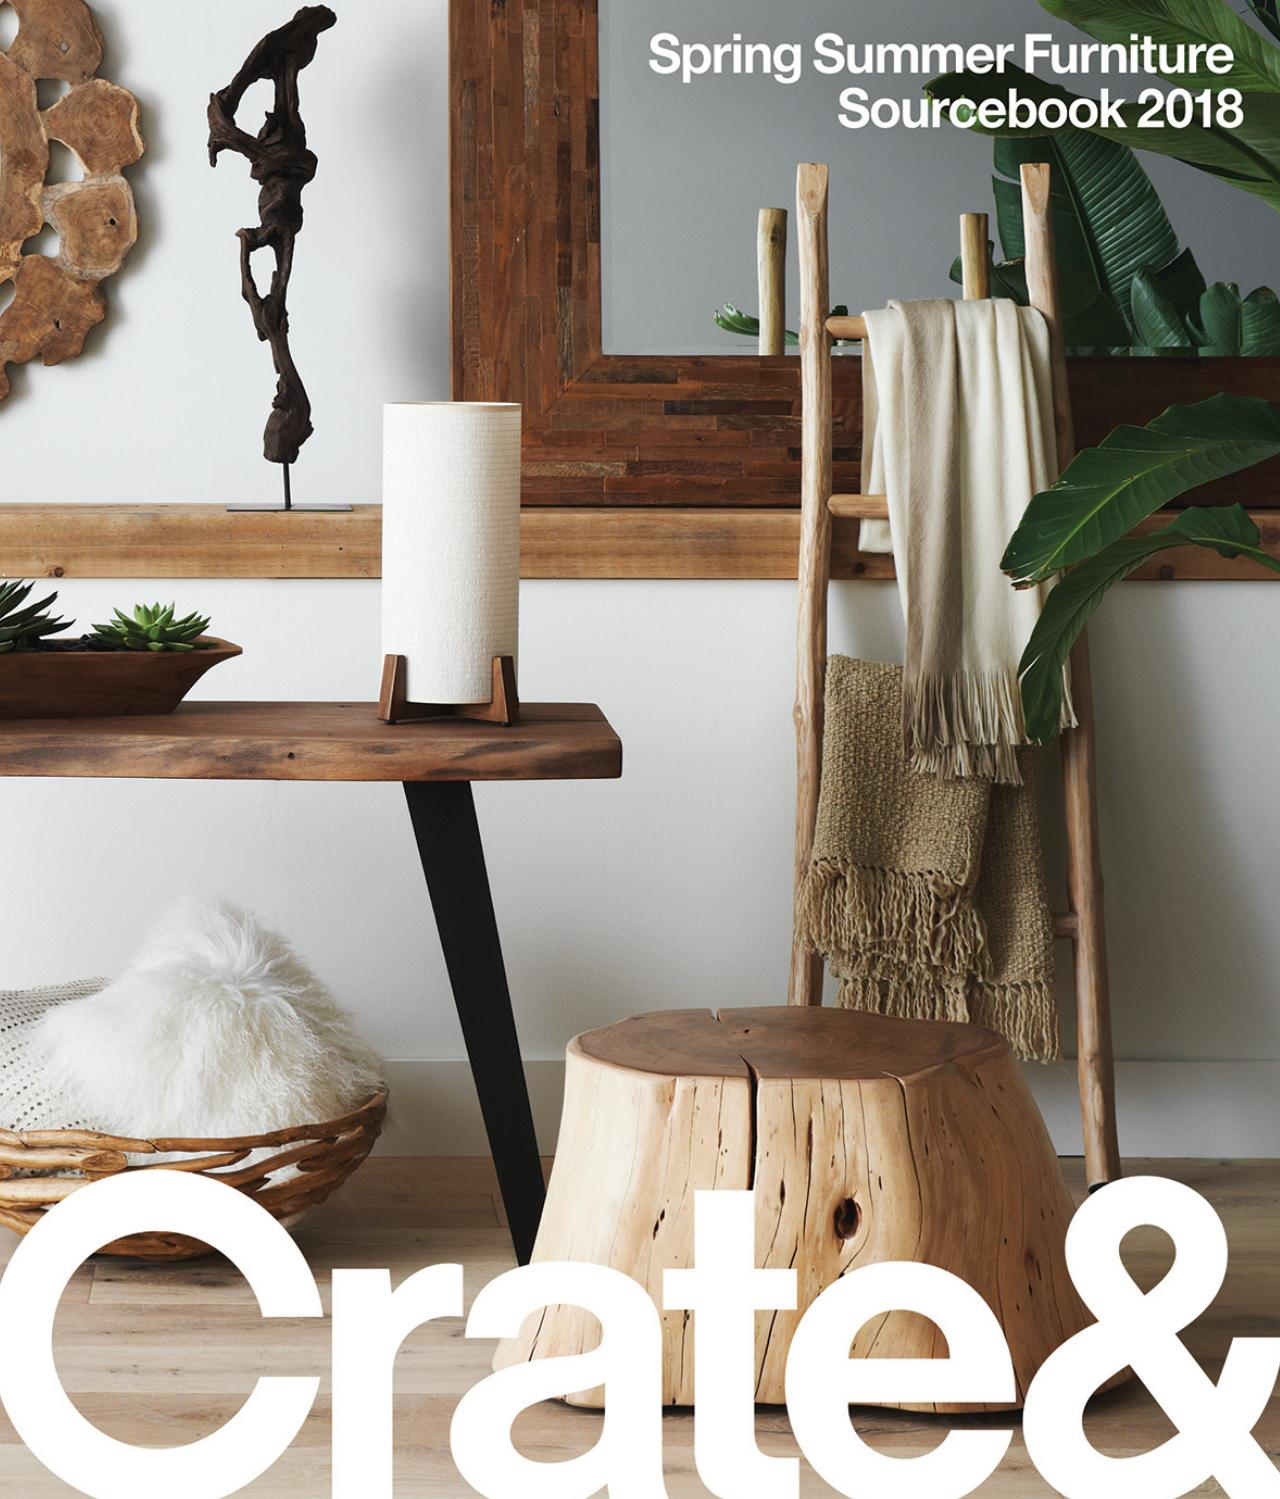 Crate and barrel singapore frg ss 2017